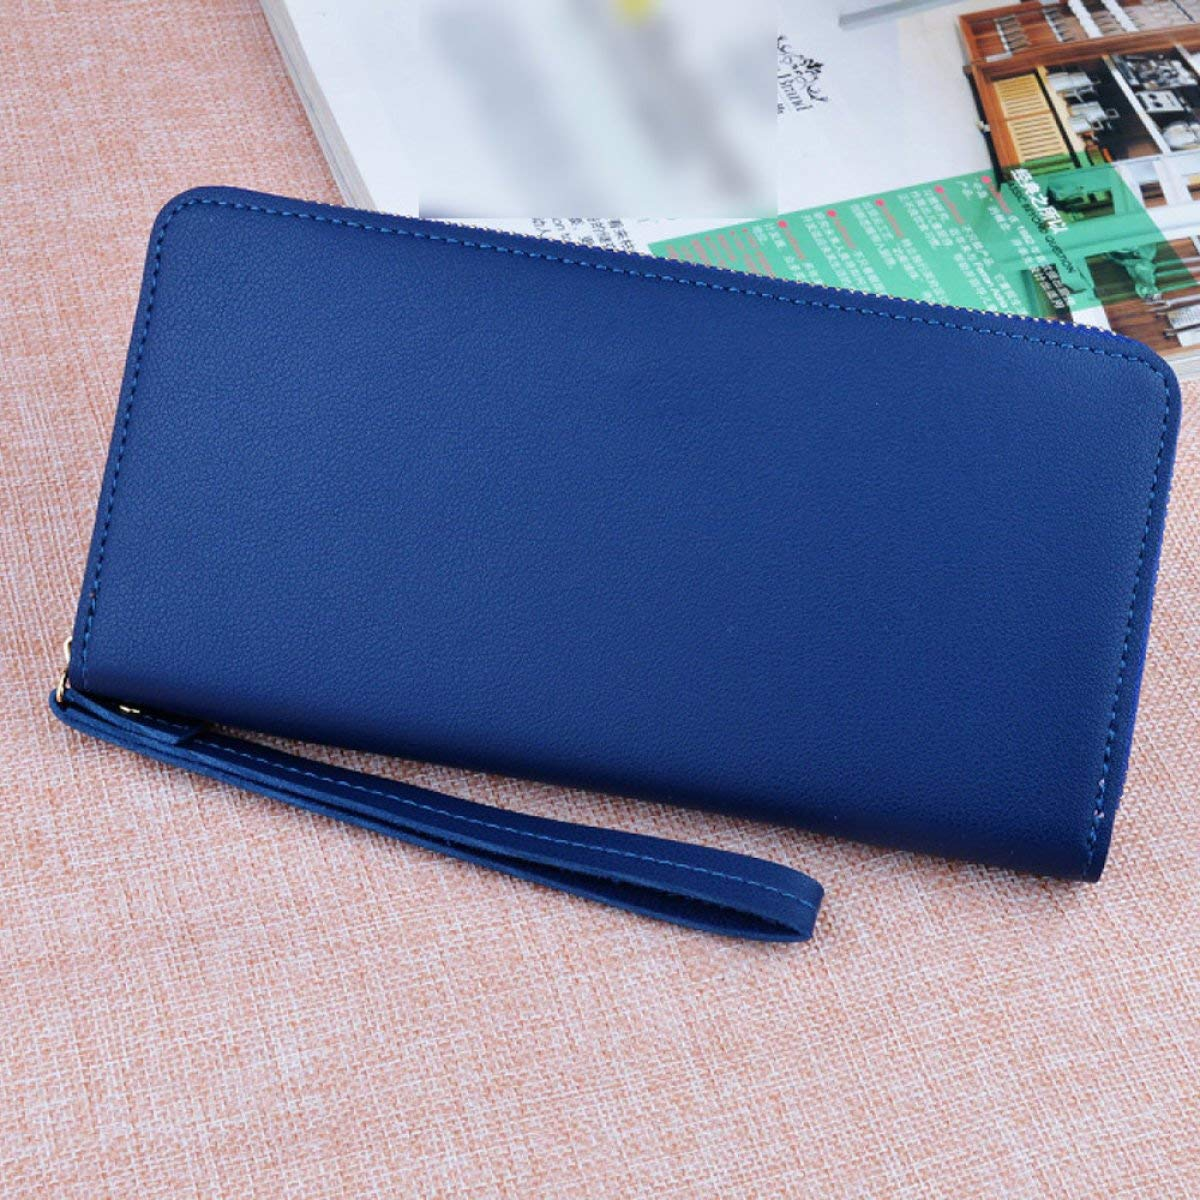 B Cross Fashion Simple Long Zipper Ladies Wallet Large Capacity MultiCard Mobile Wallet Wallet with Hand Strap for Work (color   E)